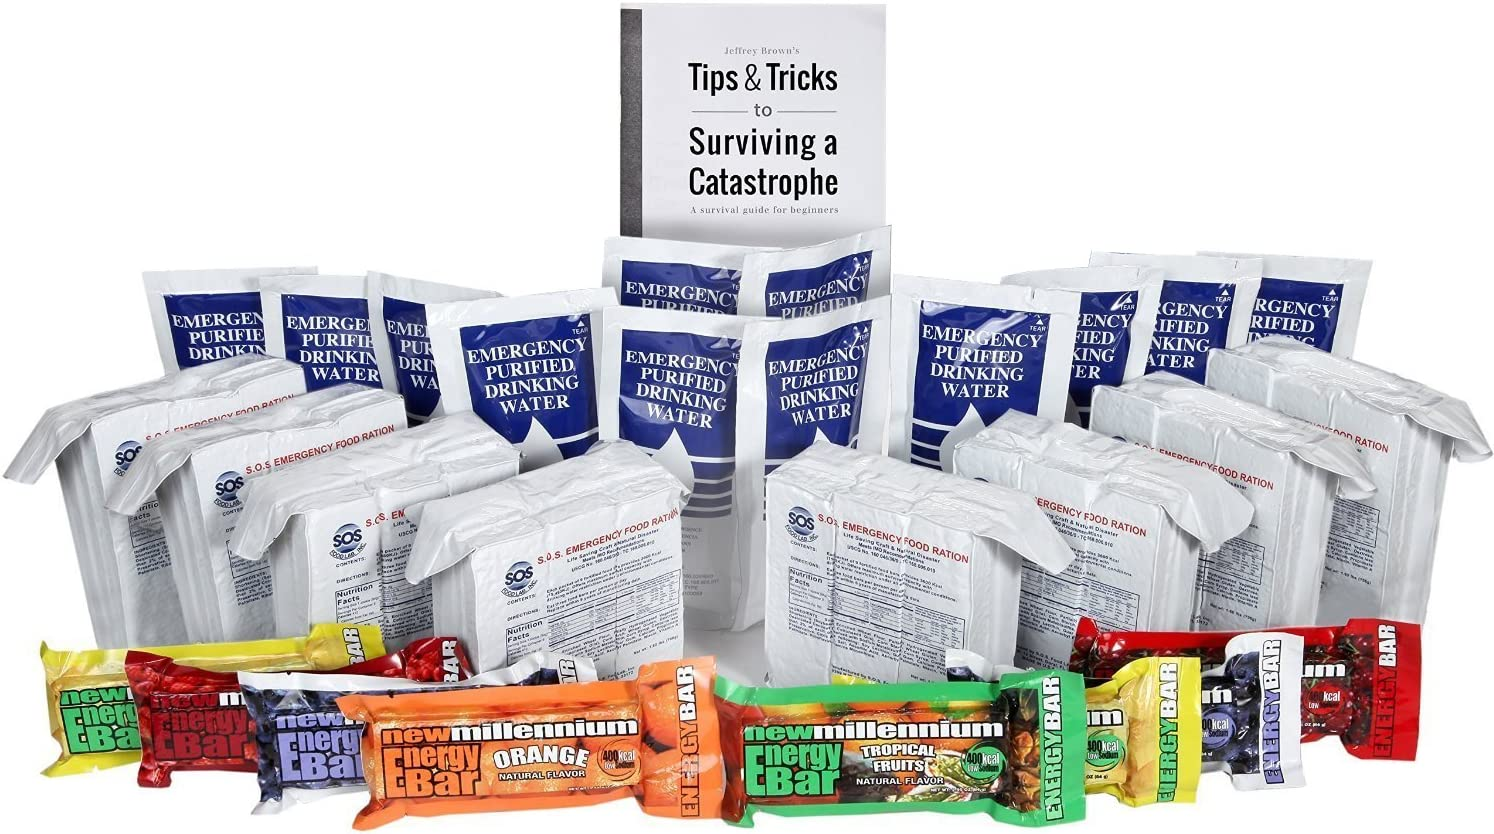 S.O.S. Rations Survival Emergency 3600 Calorie Food Bar + Pouch Emergency Purified Drinking Water + Assorted Millenium Energy bars w/Tips Guide by Jeff Brown